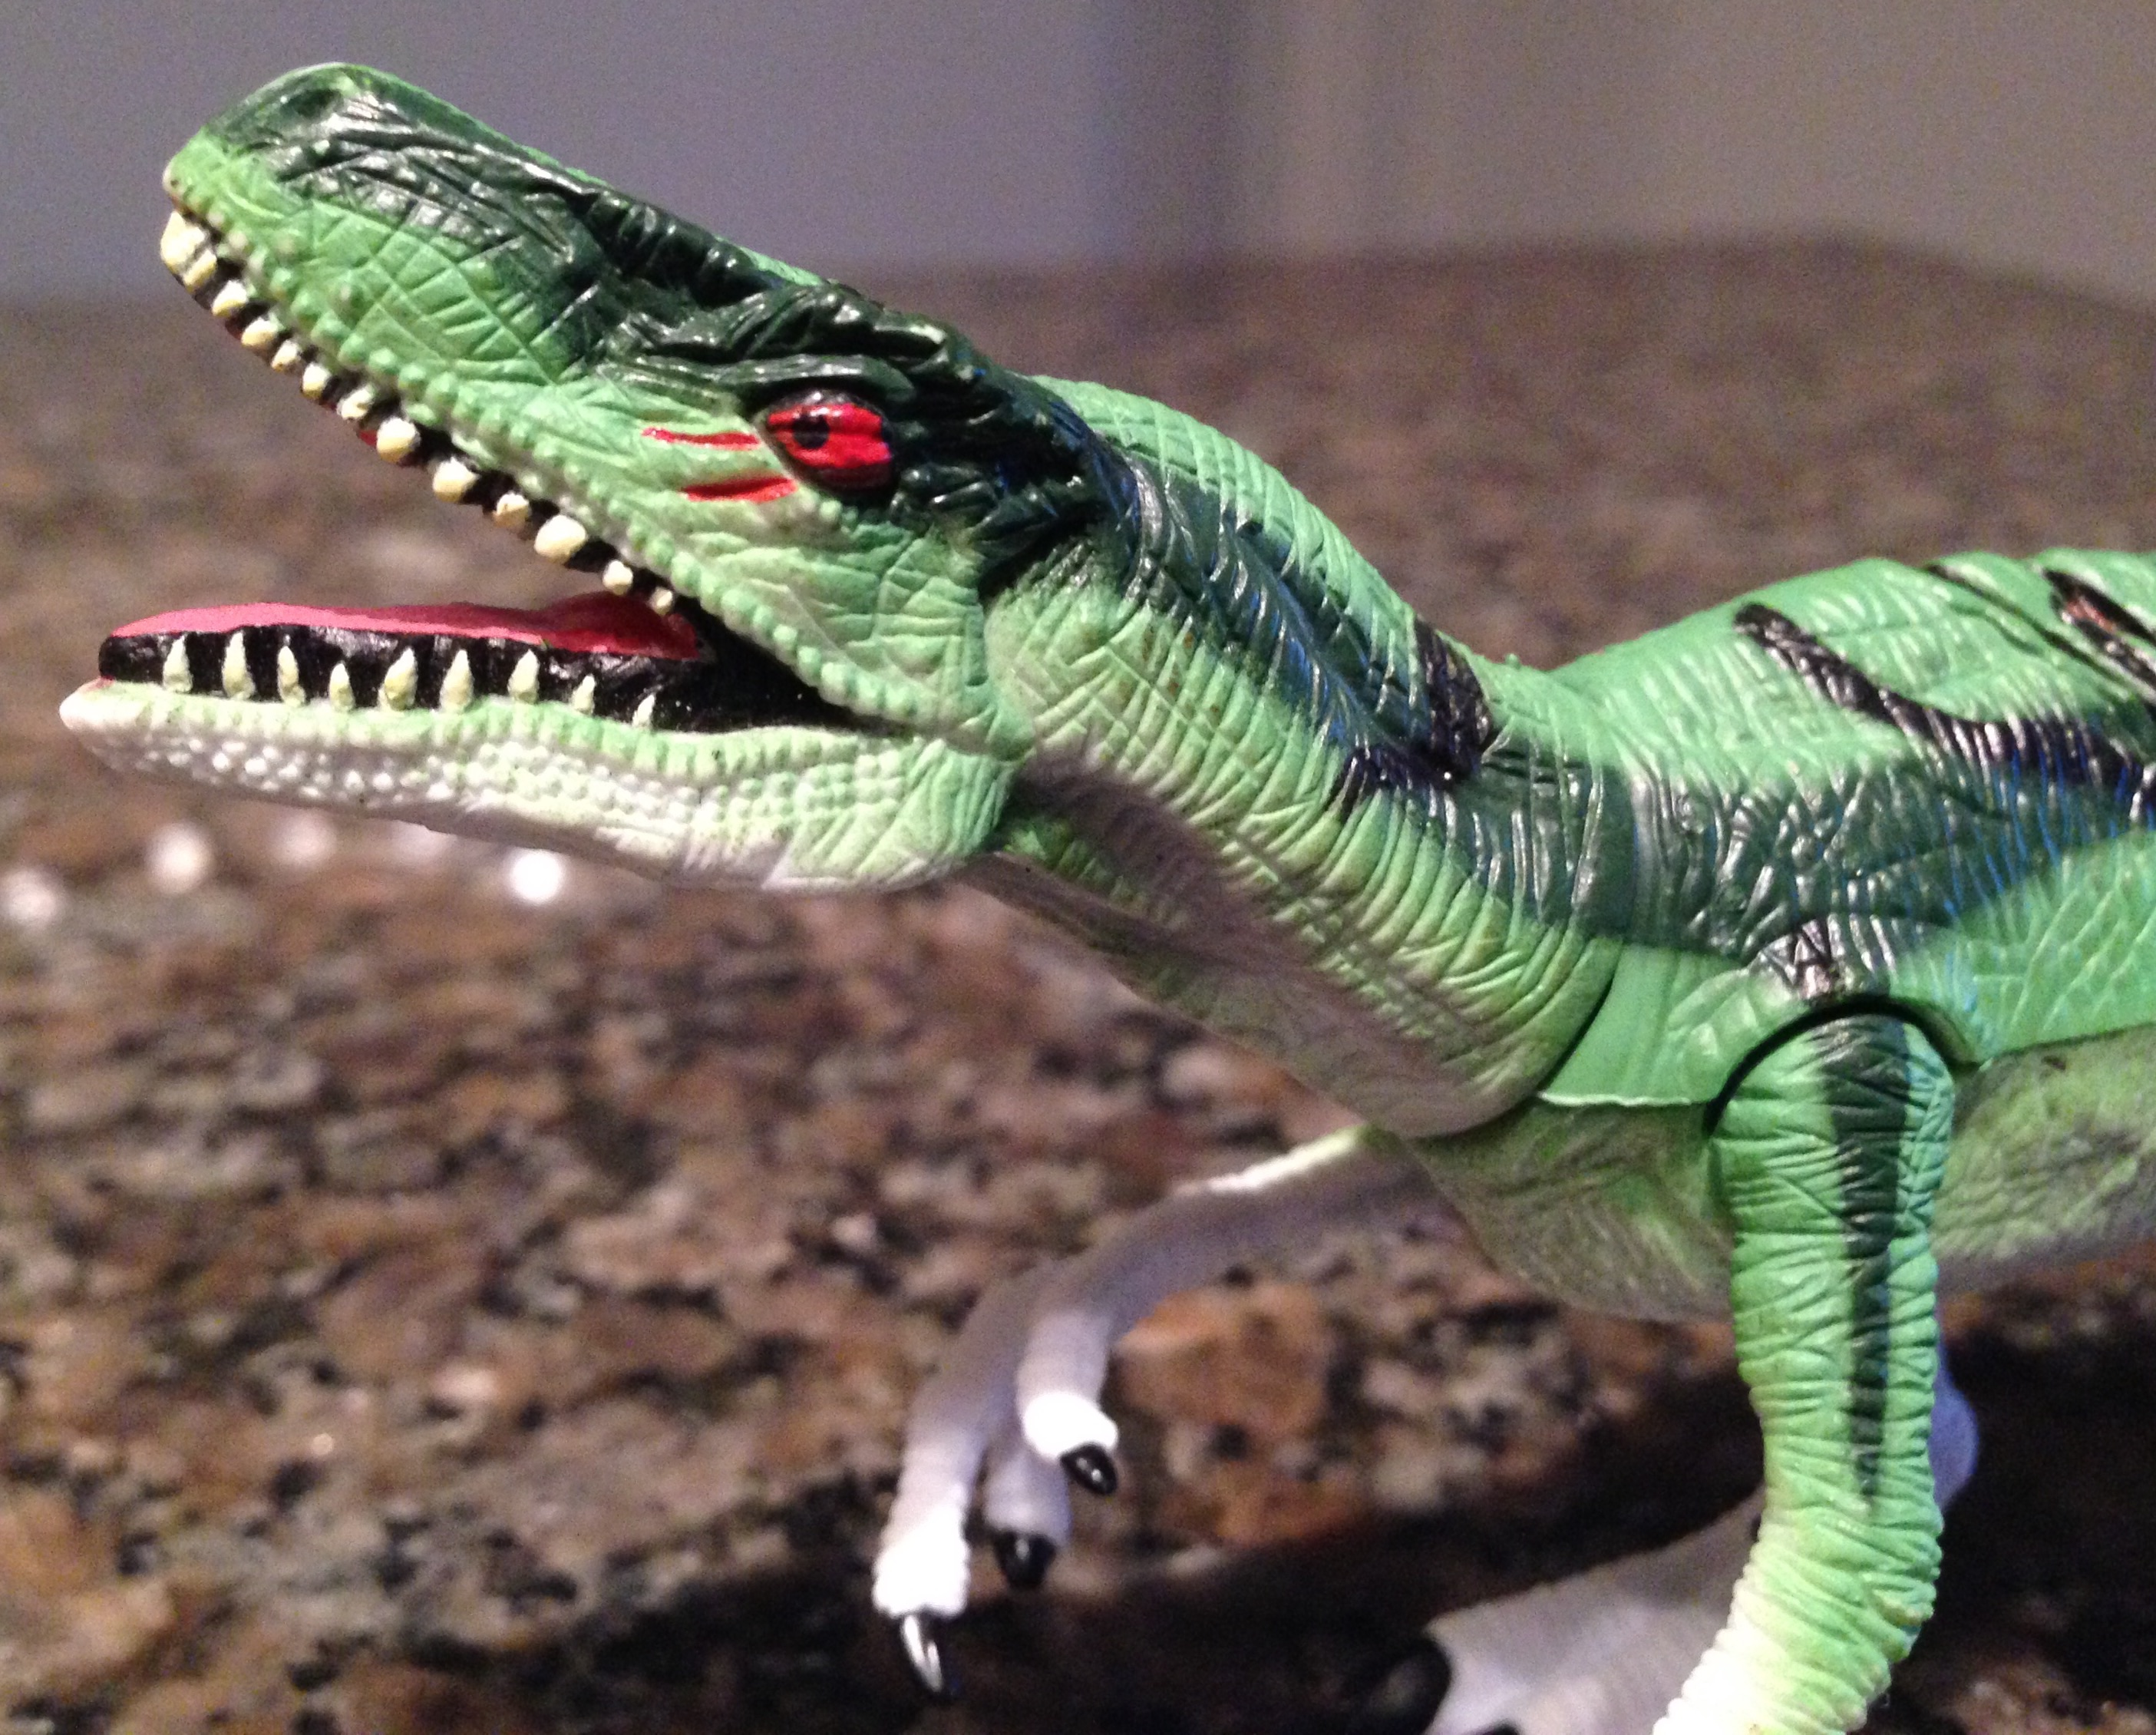 Can recommend Jurassic park dinosaur toys interesting moment